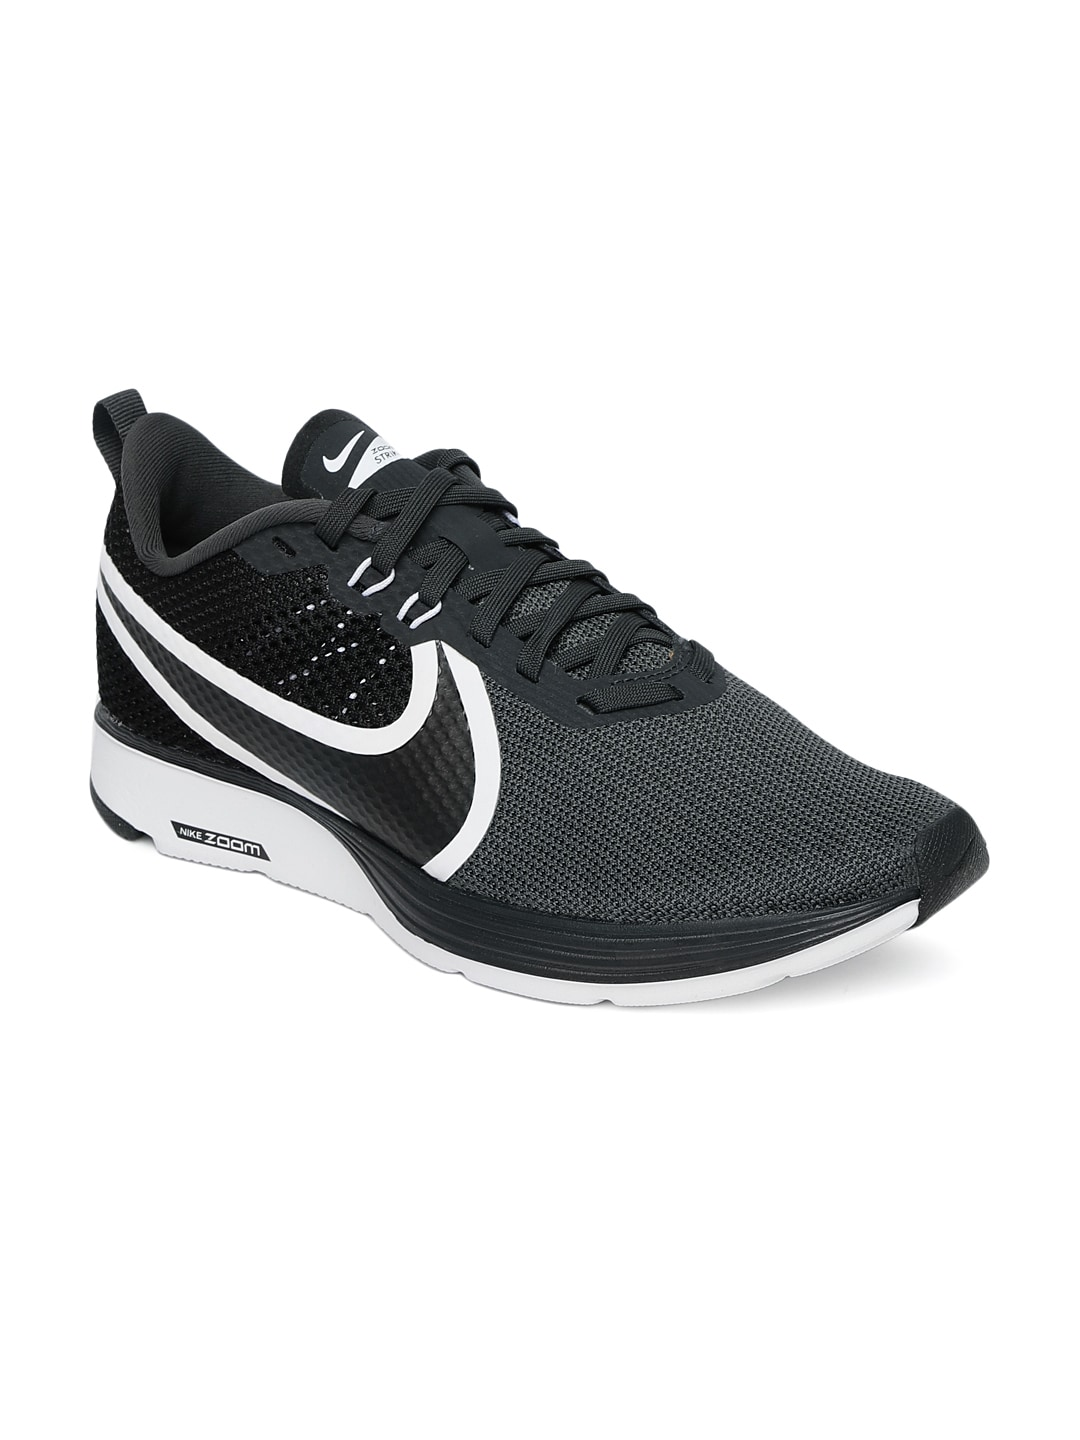 3408501c4ba Nike Sport Shoe - Buy Nike Sport Shoes At Best Price Online